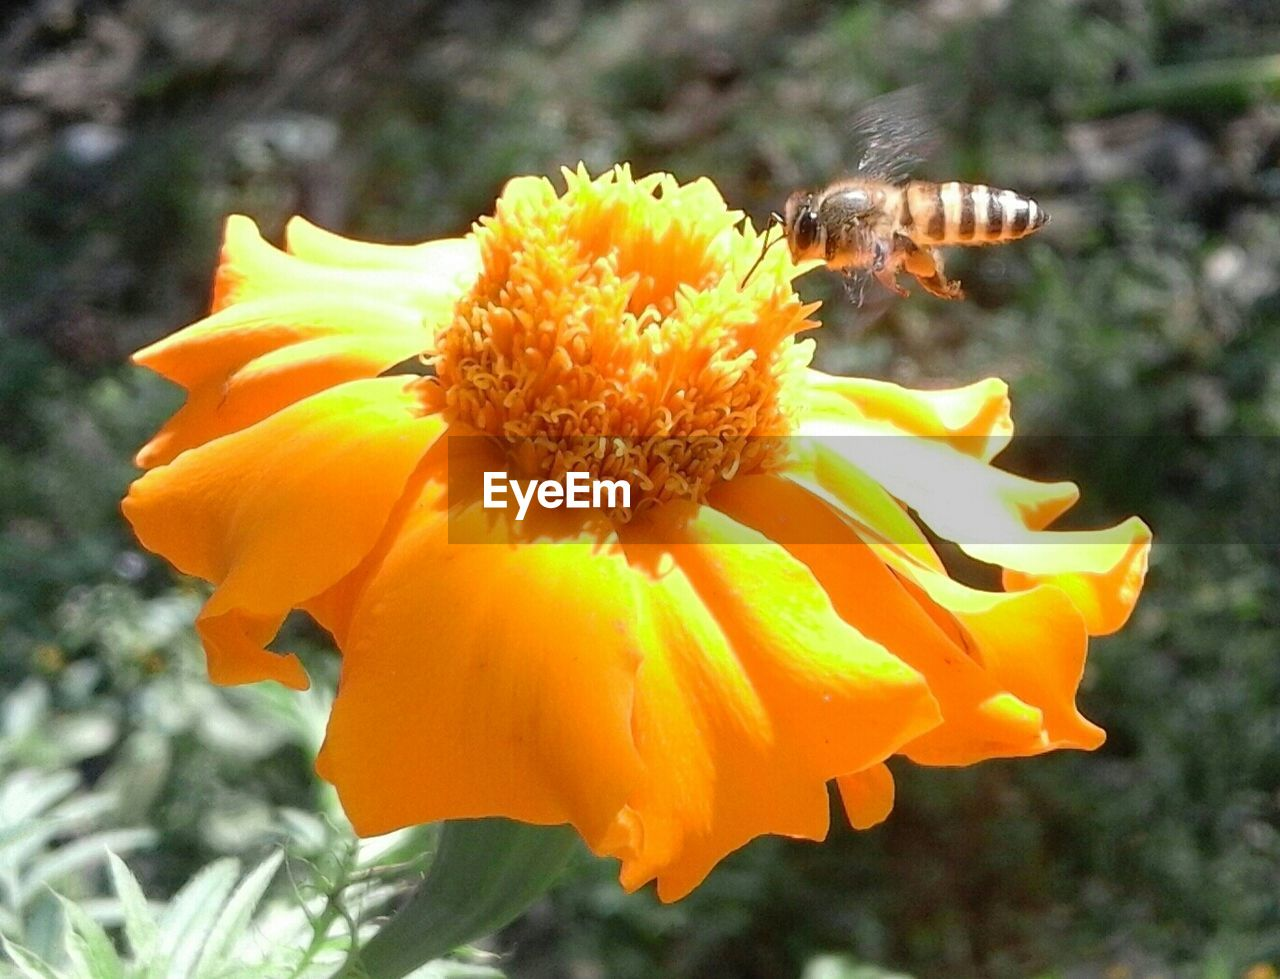 flower, petal, fragility, freshness, yellow, nature, beauty in nature, insect, flower head, outdoors, growth, plant, animal themes, animals in the wild, day, no people, close-up, focus on foreground, blooming, bee, one animal, pollen, pollination, buzzing